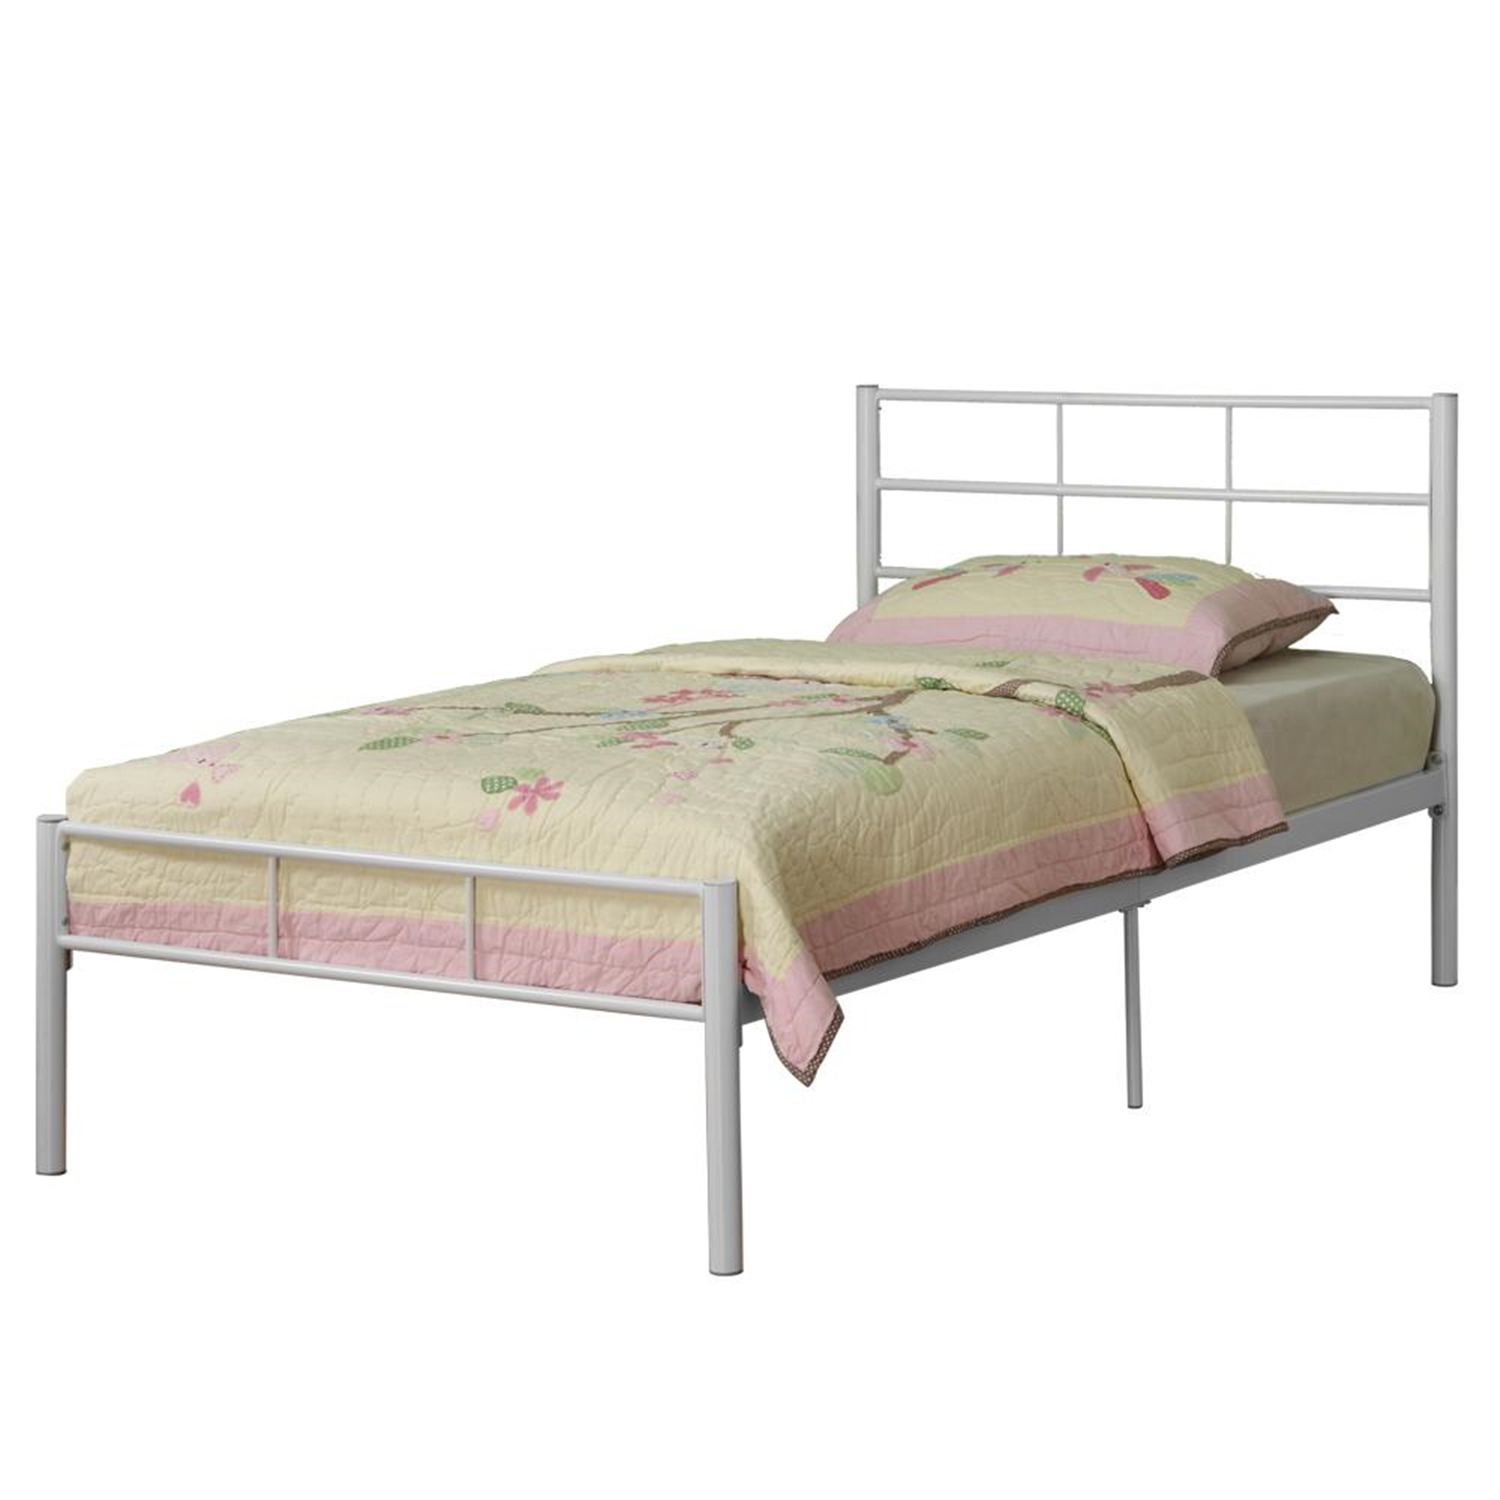 Walker edison twin metal bed frame by oj commerce Metal twin bed frame